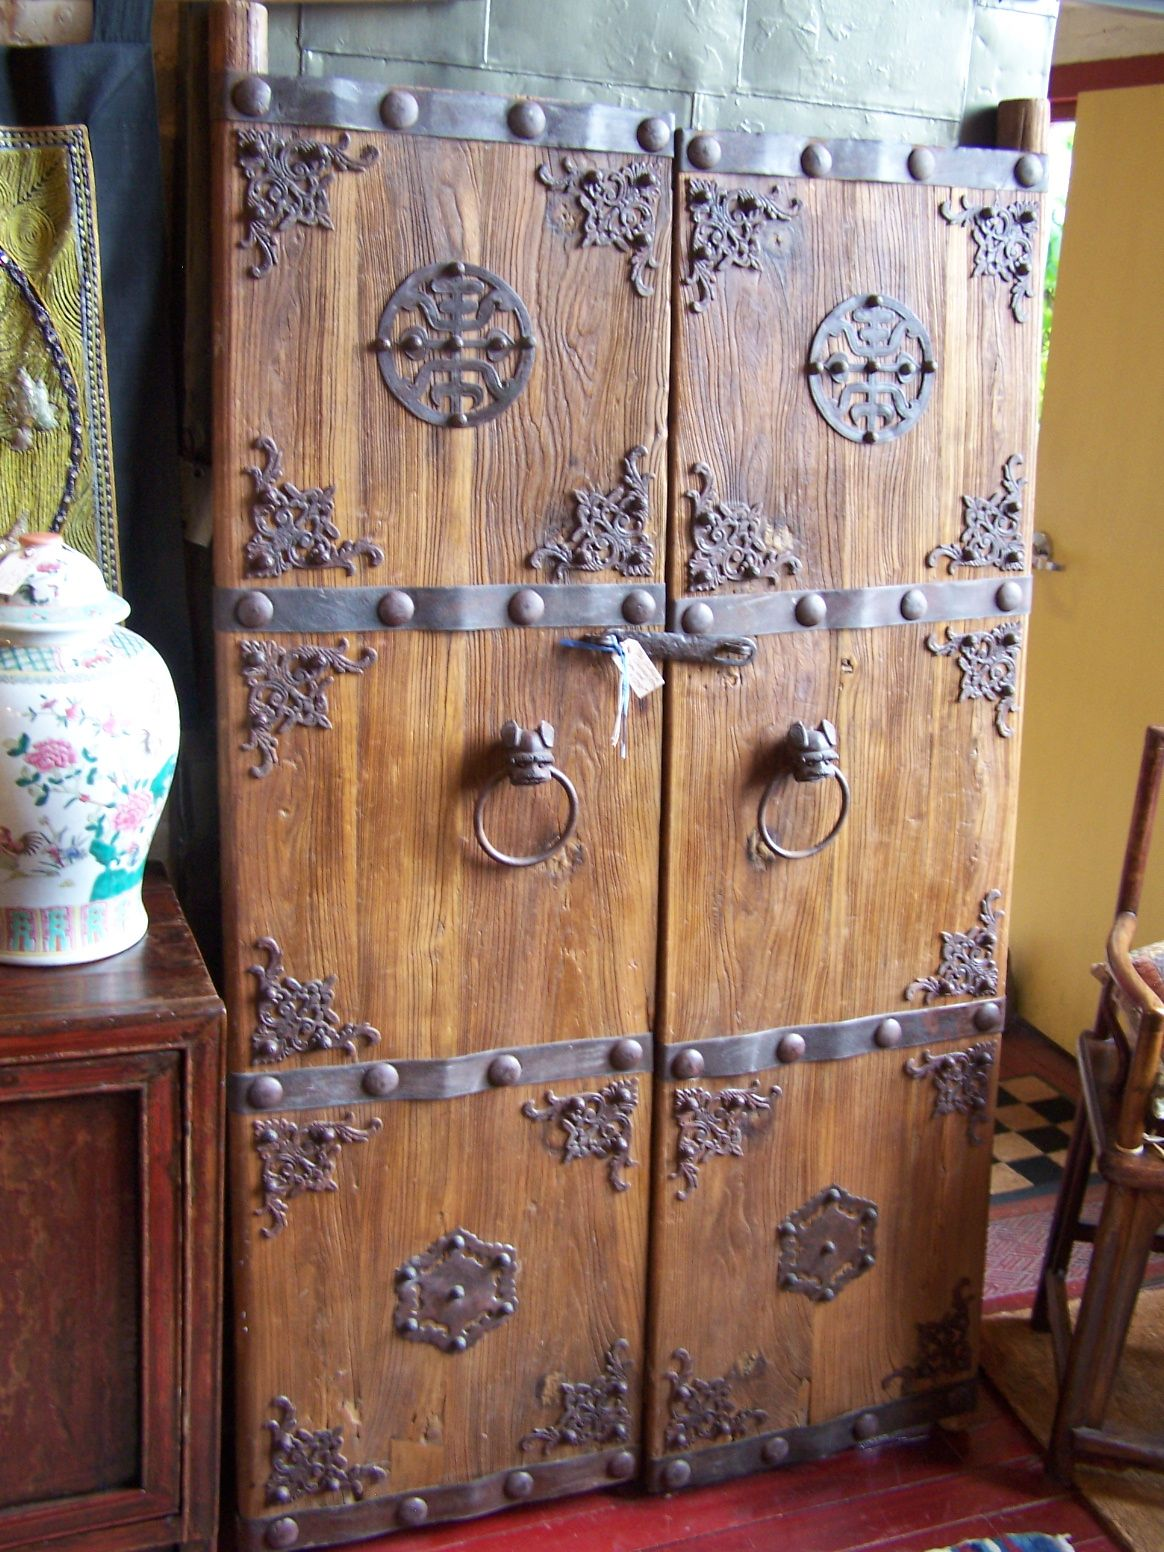 chinese antique dinner wear | chinese pair of wooden gate doors $ 3900  shanxi china - Chinese Antique Dinner Wear Chinese Pair Of Wooden Gate Doors